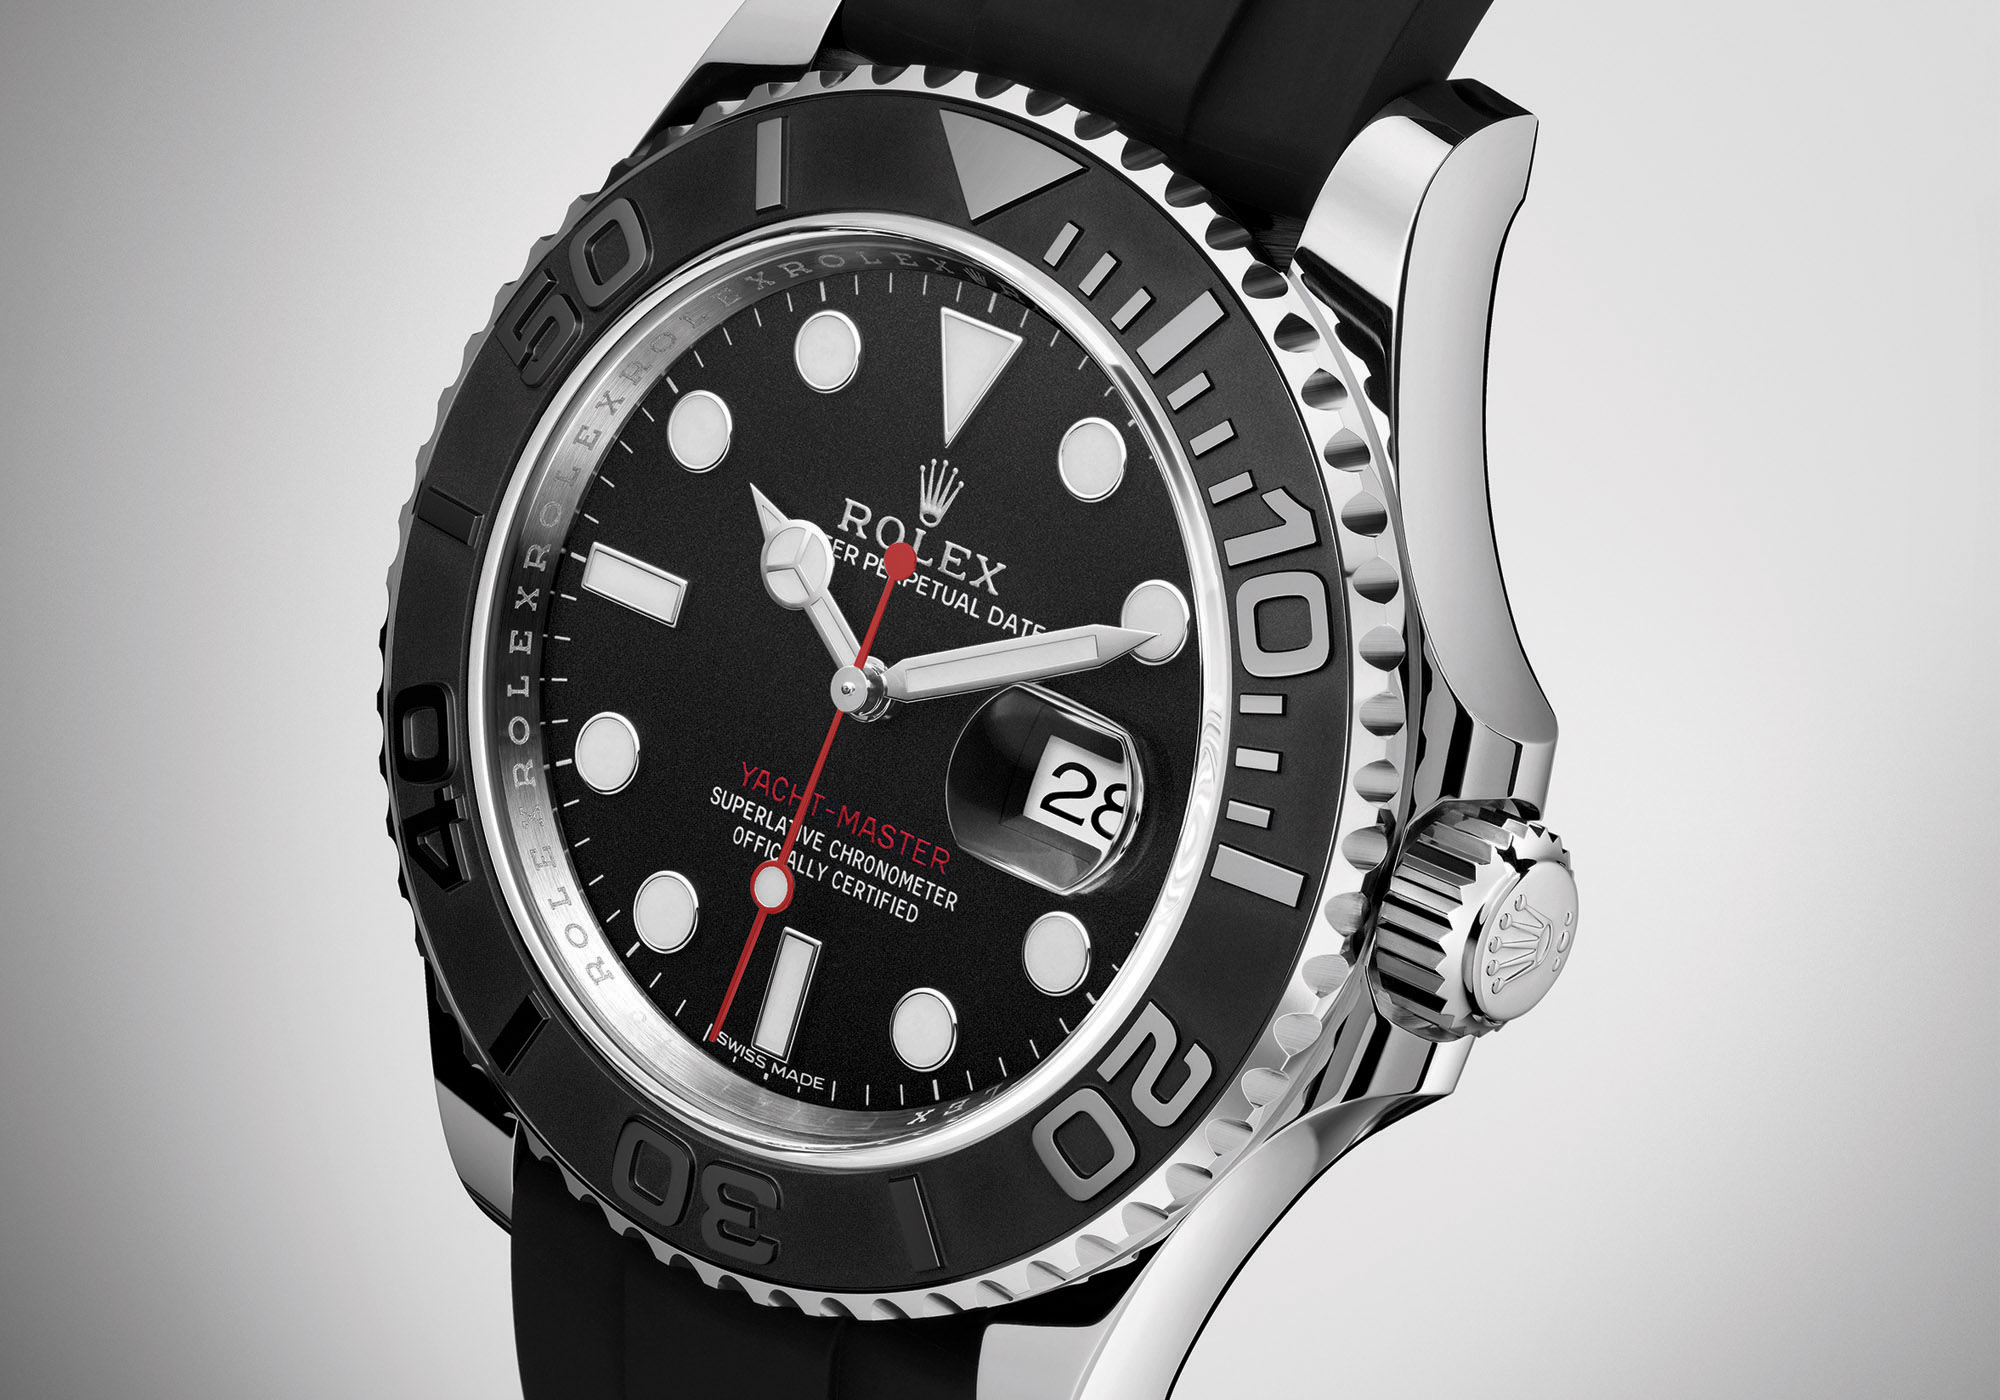 Rolex Yacht Master Steel Ceramic Bezel Black Dial Rubber - Rolex Baselworld 2017 - Rolex Predictions 2017